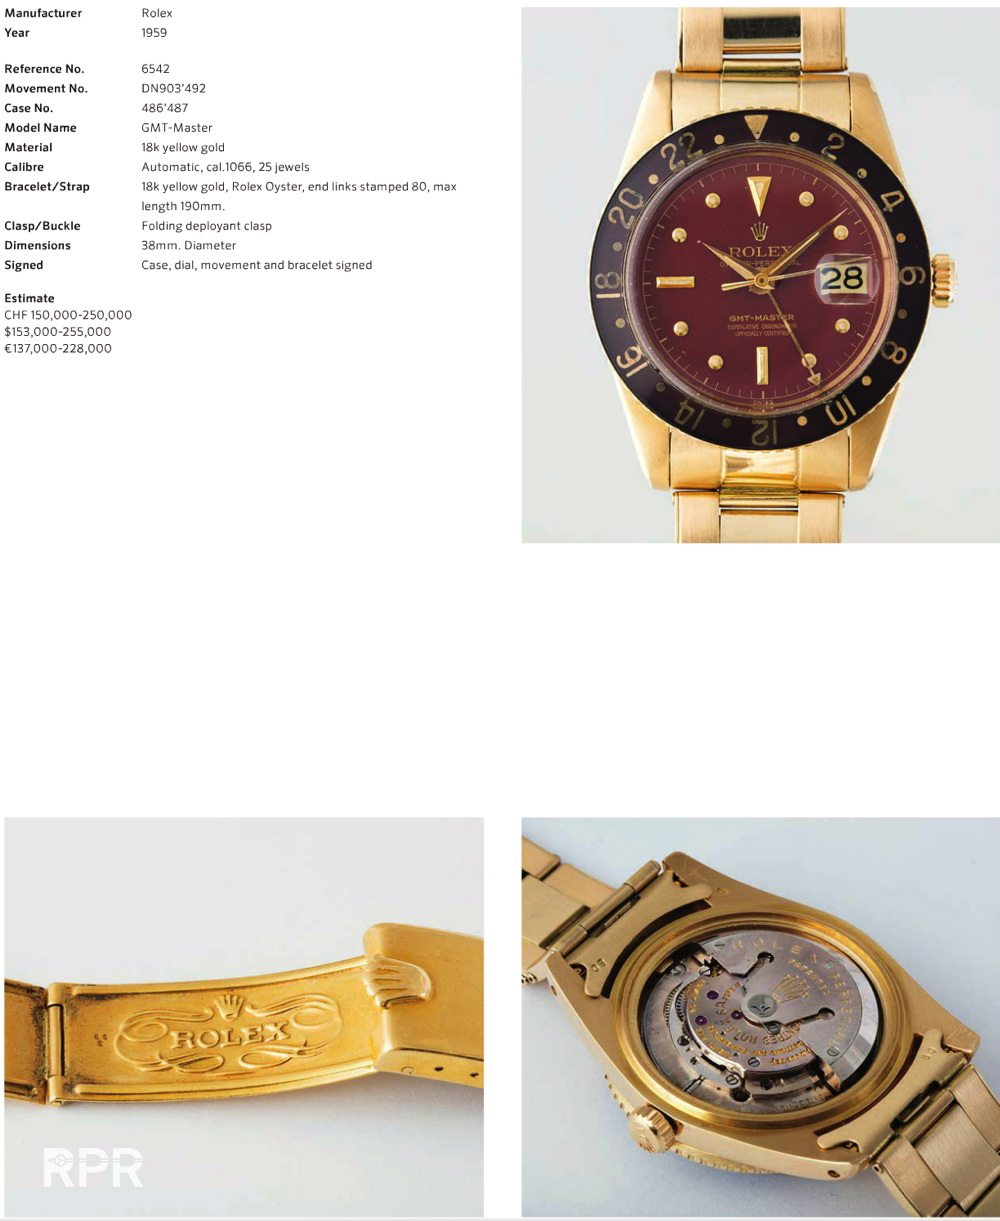 RPR_Rolex_geneva_auction_2015_37